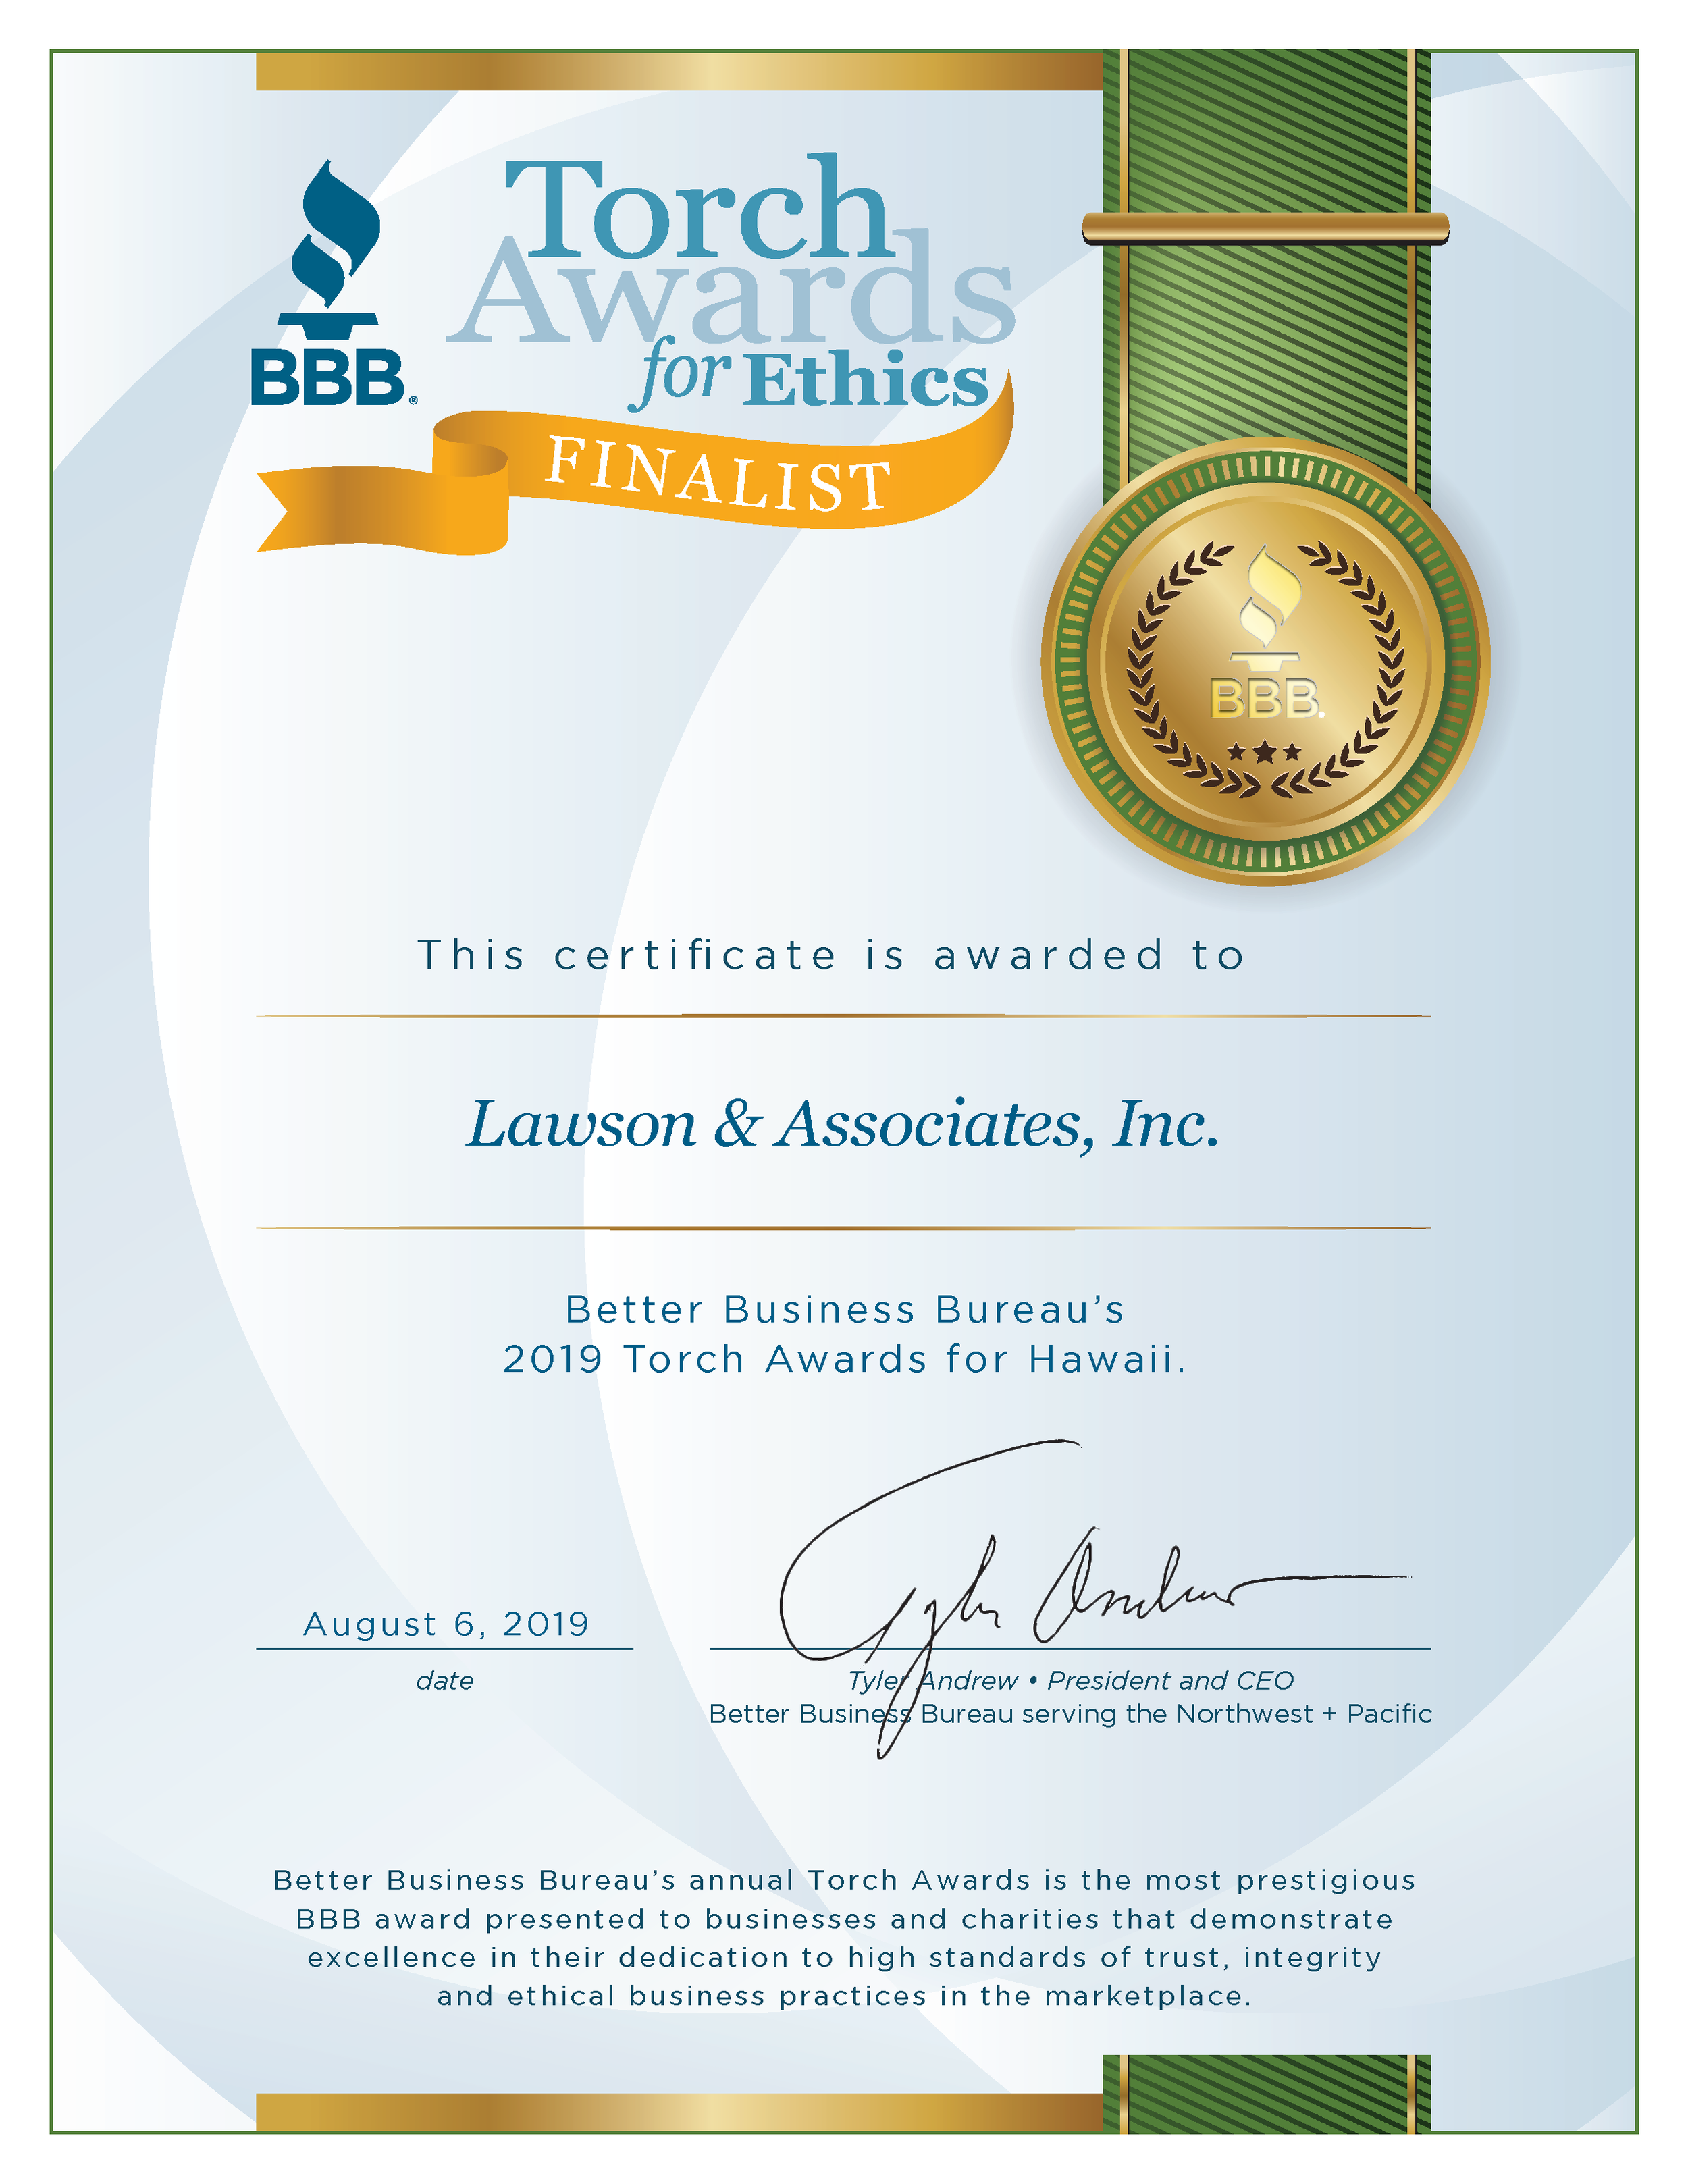 Better Business Bureau's 2019 Torch Award